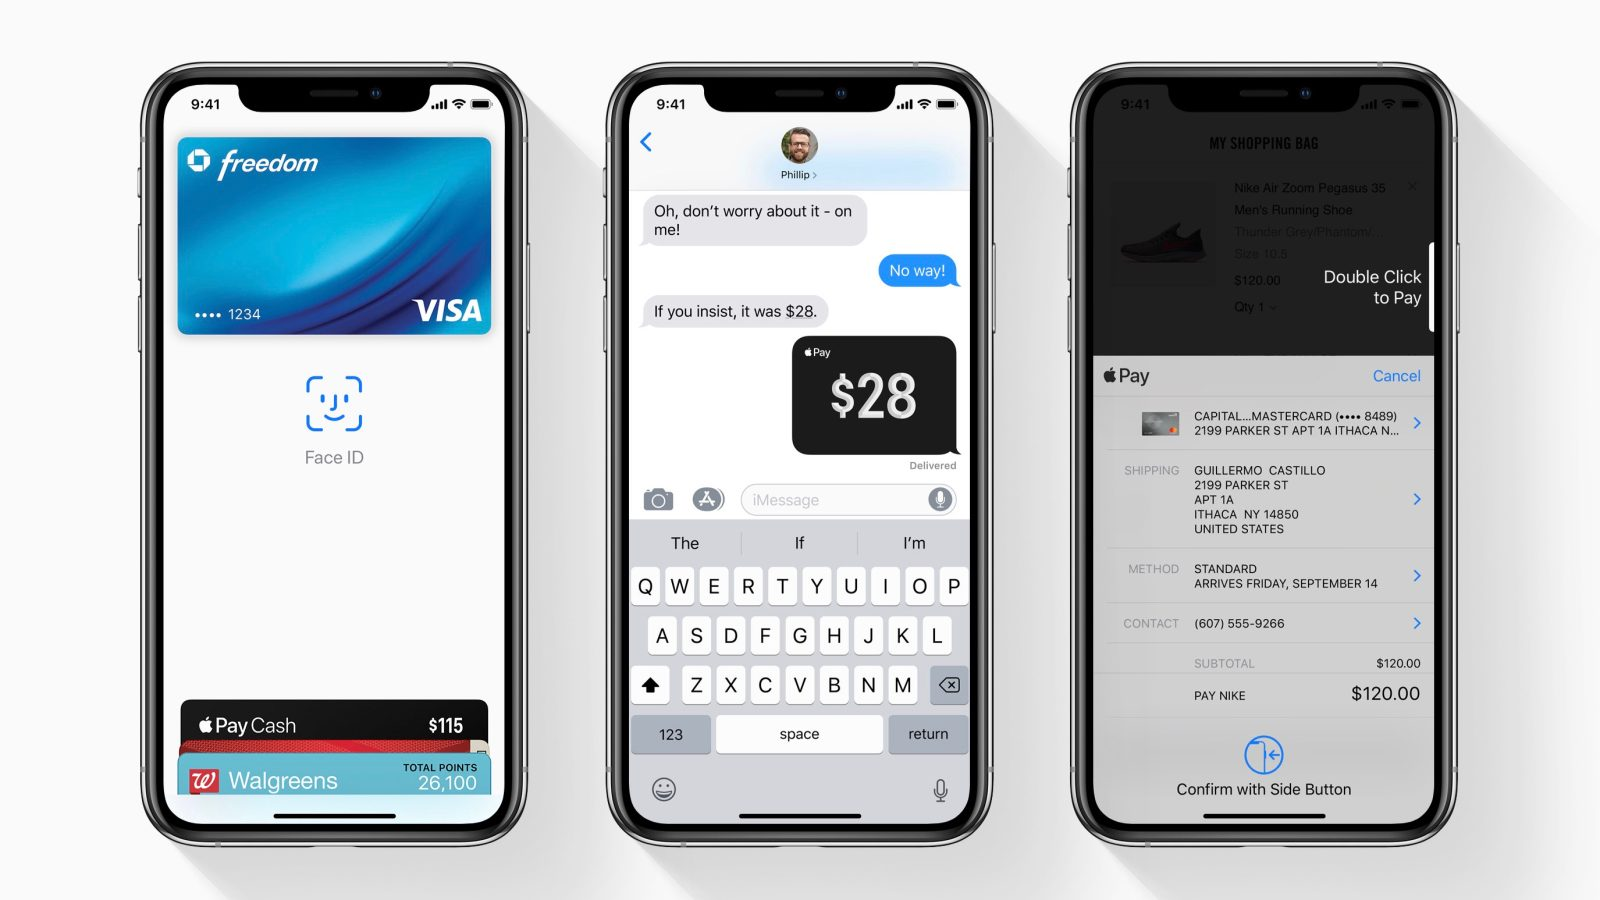 How to quickly access Apple Pay on iPhone X, XS, or XR - 9to5Mac